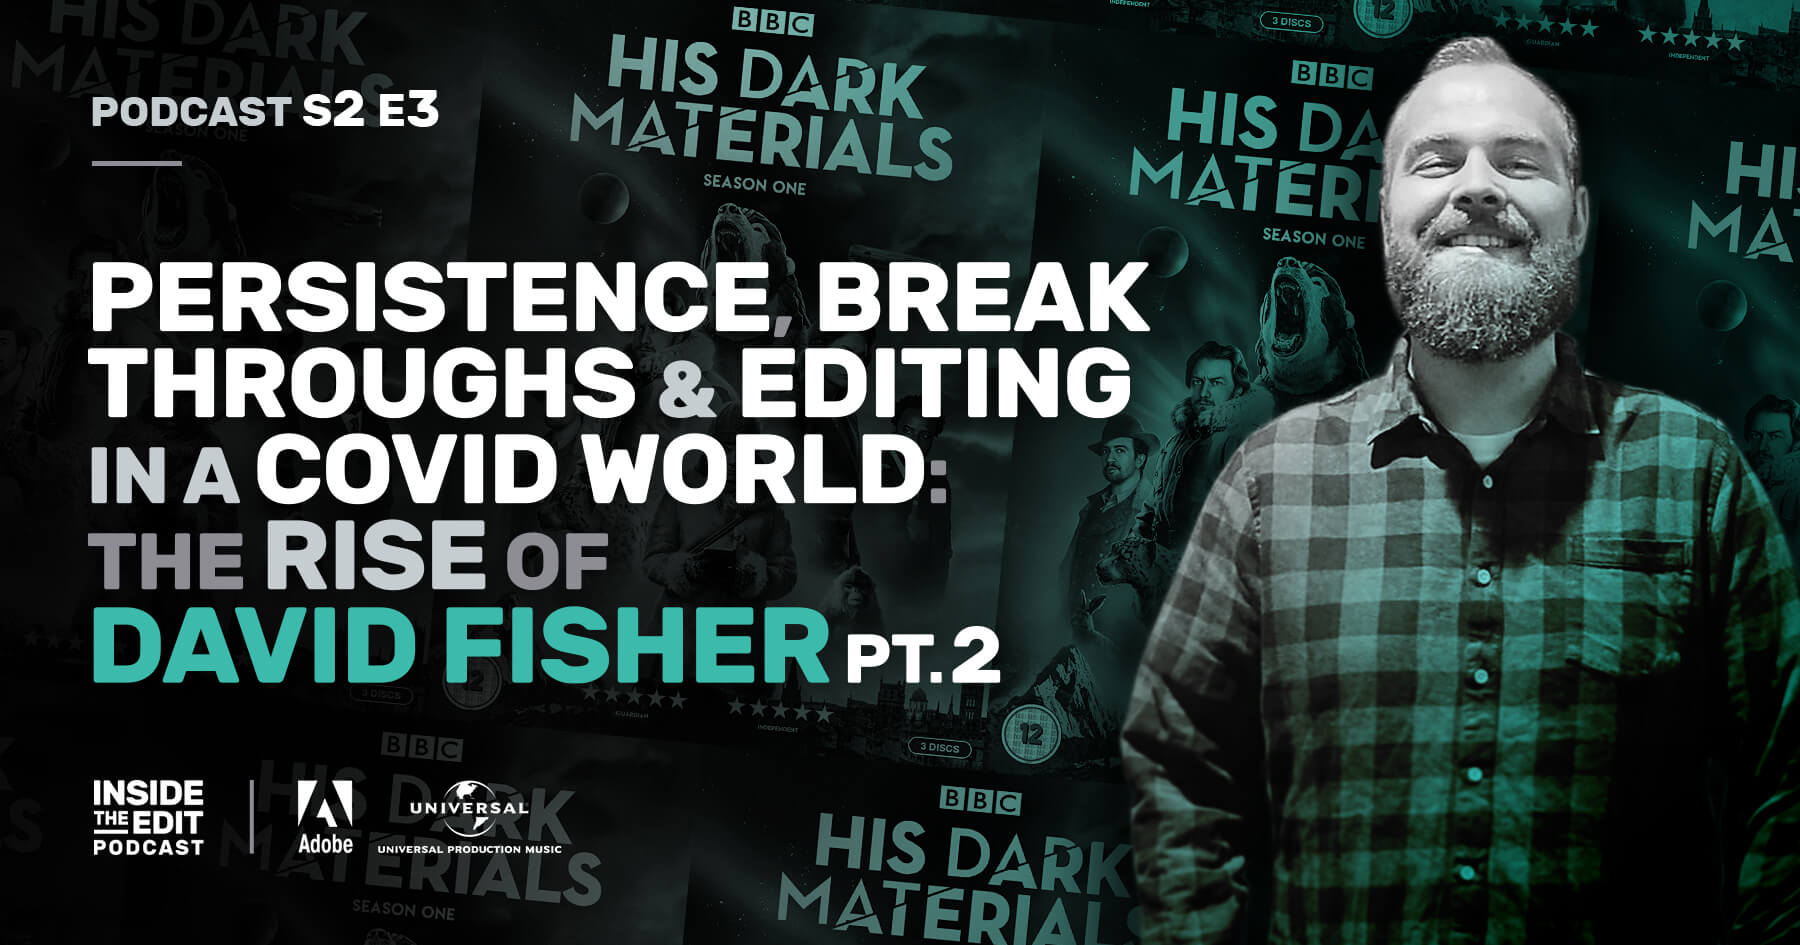 Persistence, Break Throughs & Editing in a Covid World: The Rise of David Fisher Part 2